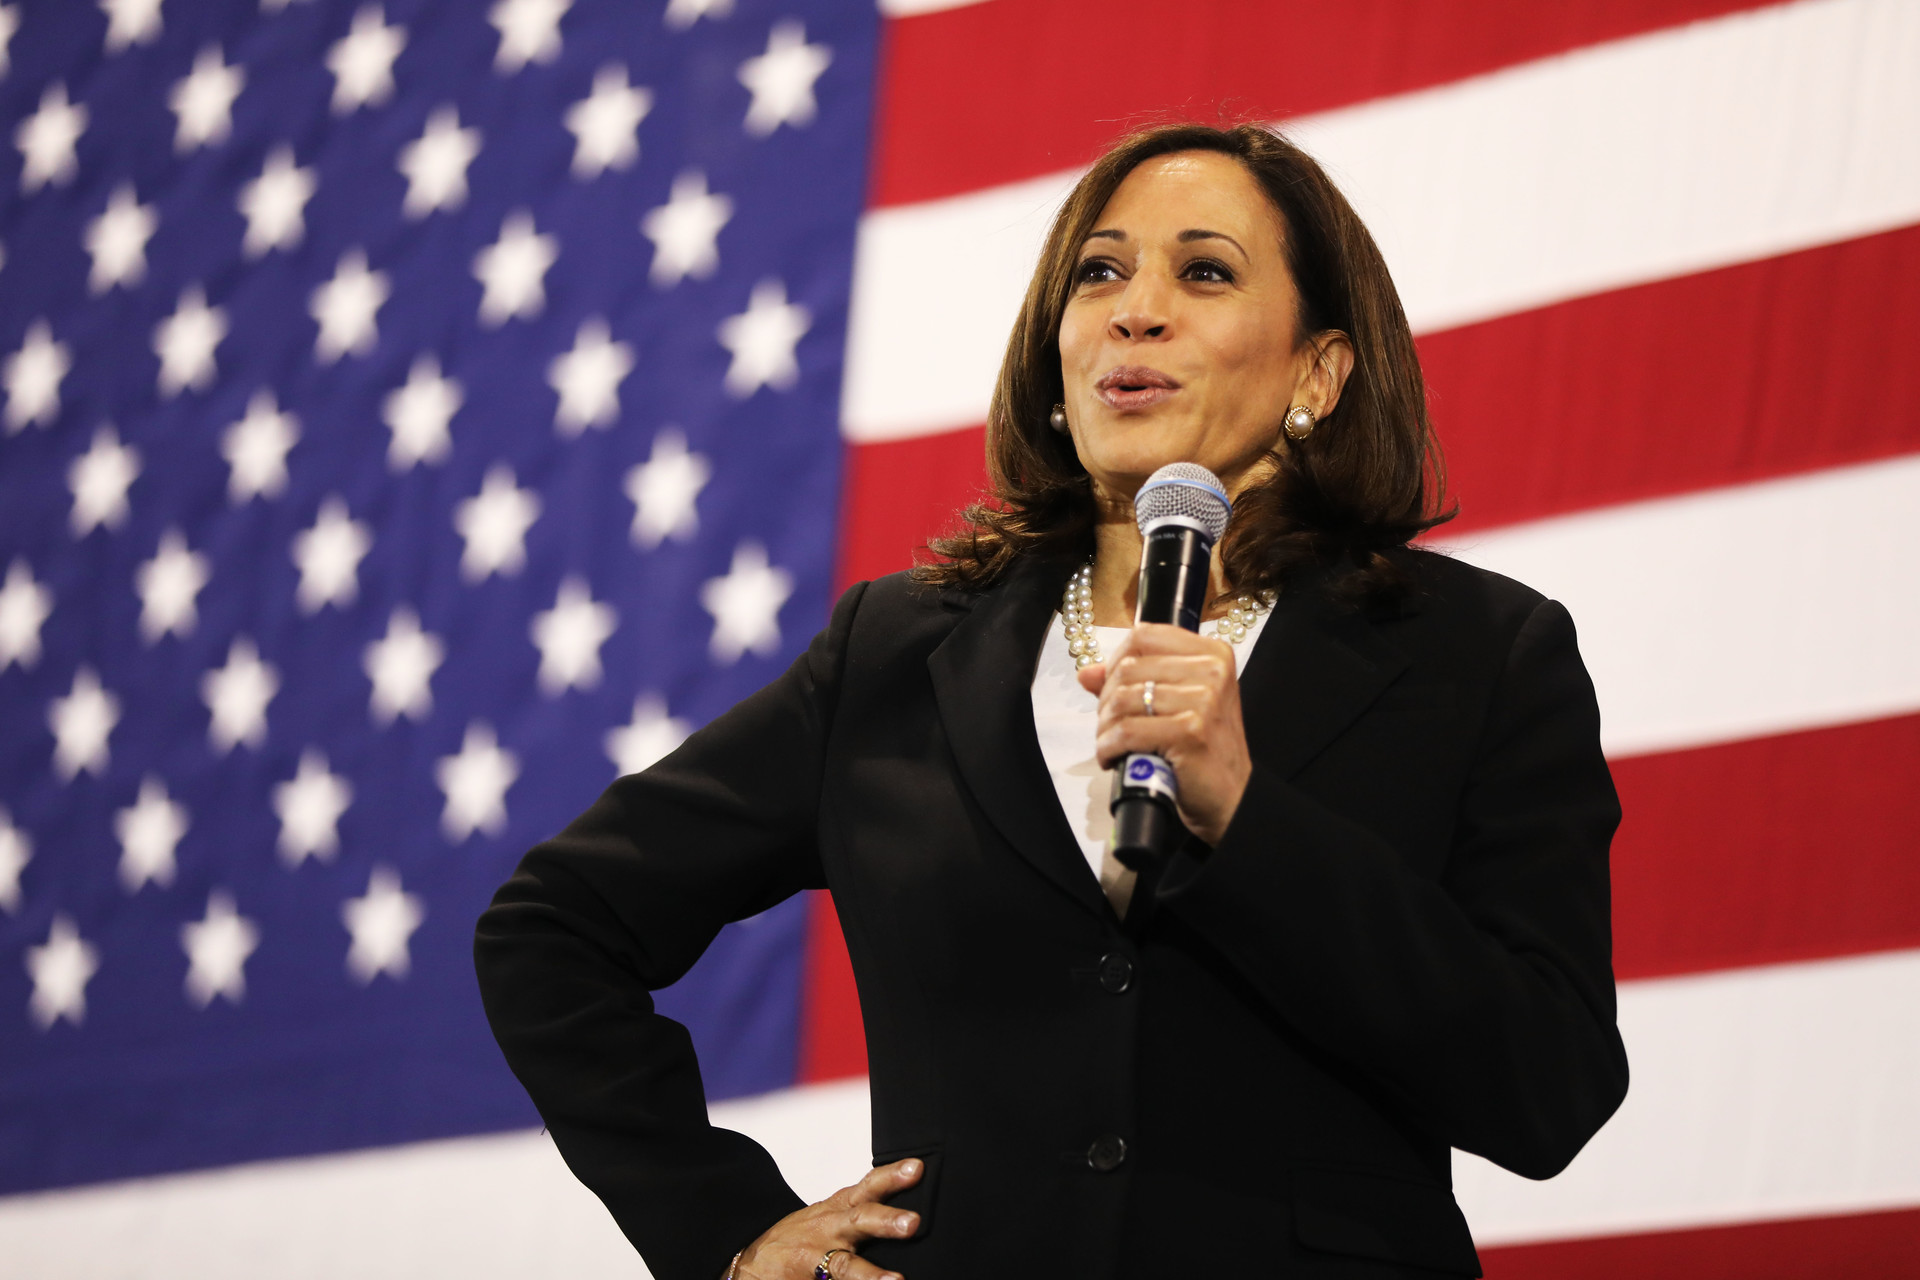 Equal Pay for Women? Kamala Harris Says She'd Hold Companies Accountable